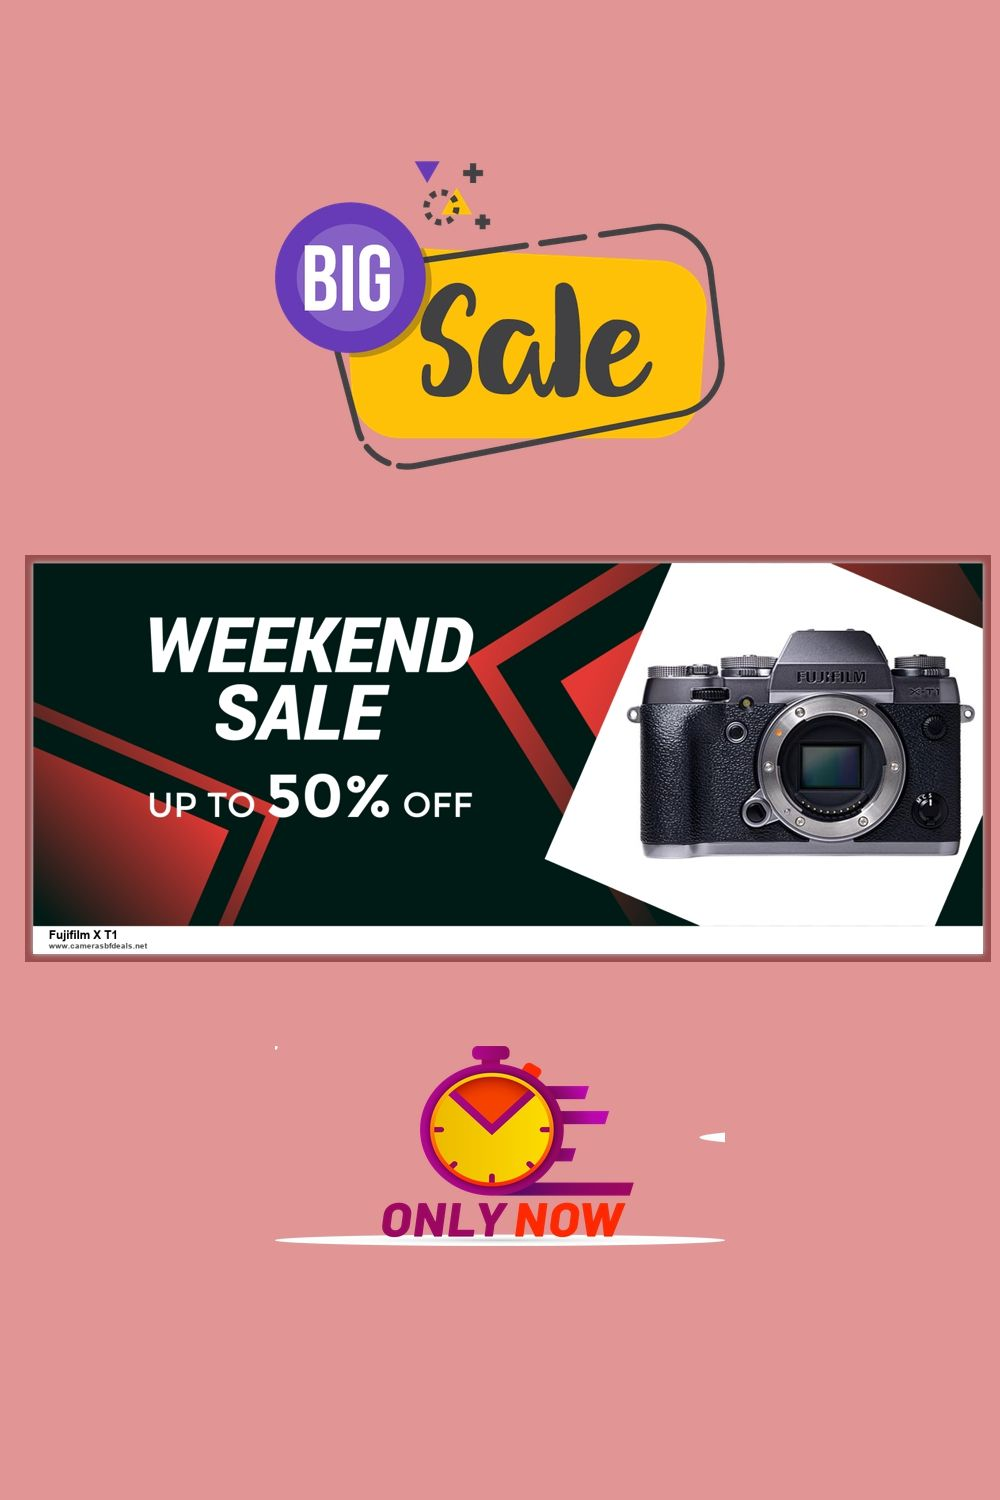 7 Best Fujifilm X T1 Black Friday Deals Up To 50 Off 2020 In 2020 Black Friday Camera Fujifilm Black Friday